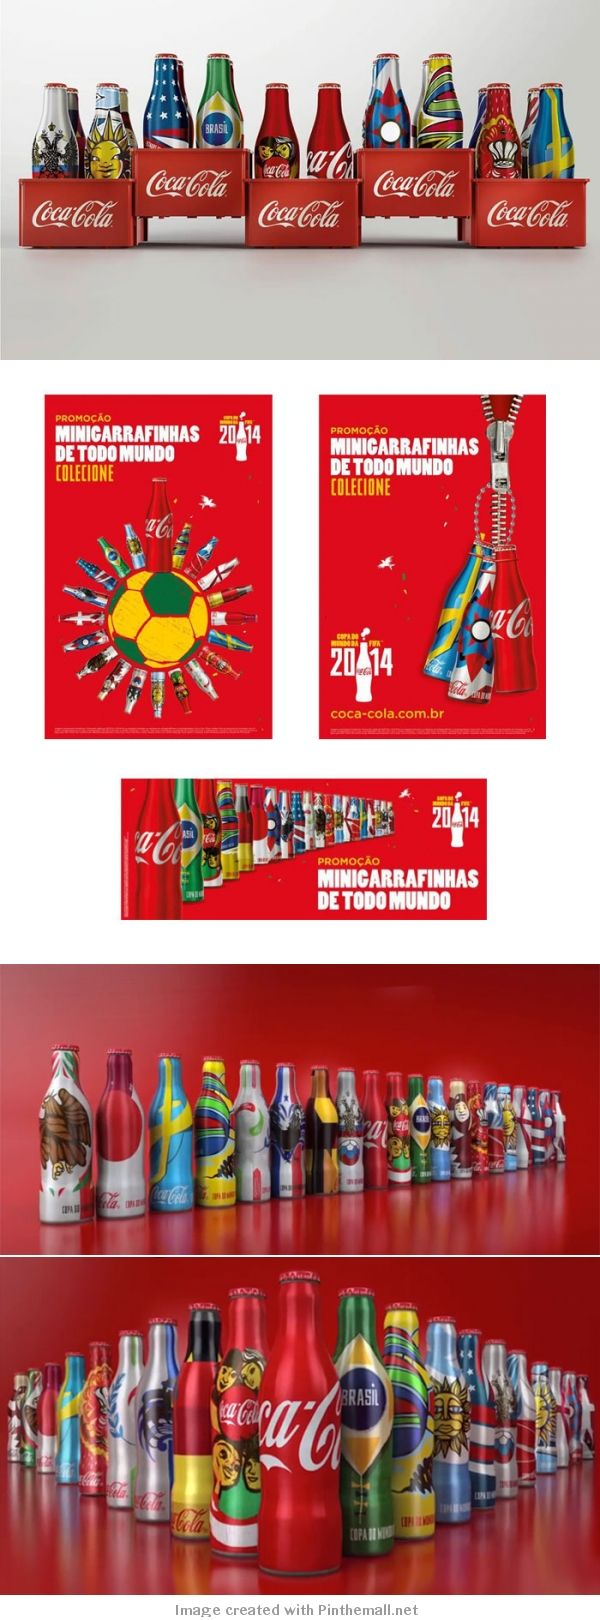 #Coca-Cola Releases Special Edition #WorldCup 2014 Mini Bottle #packaging PD